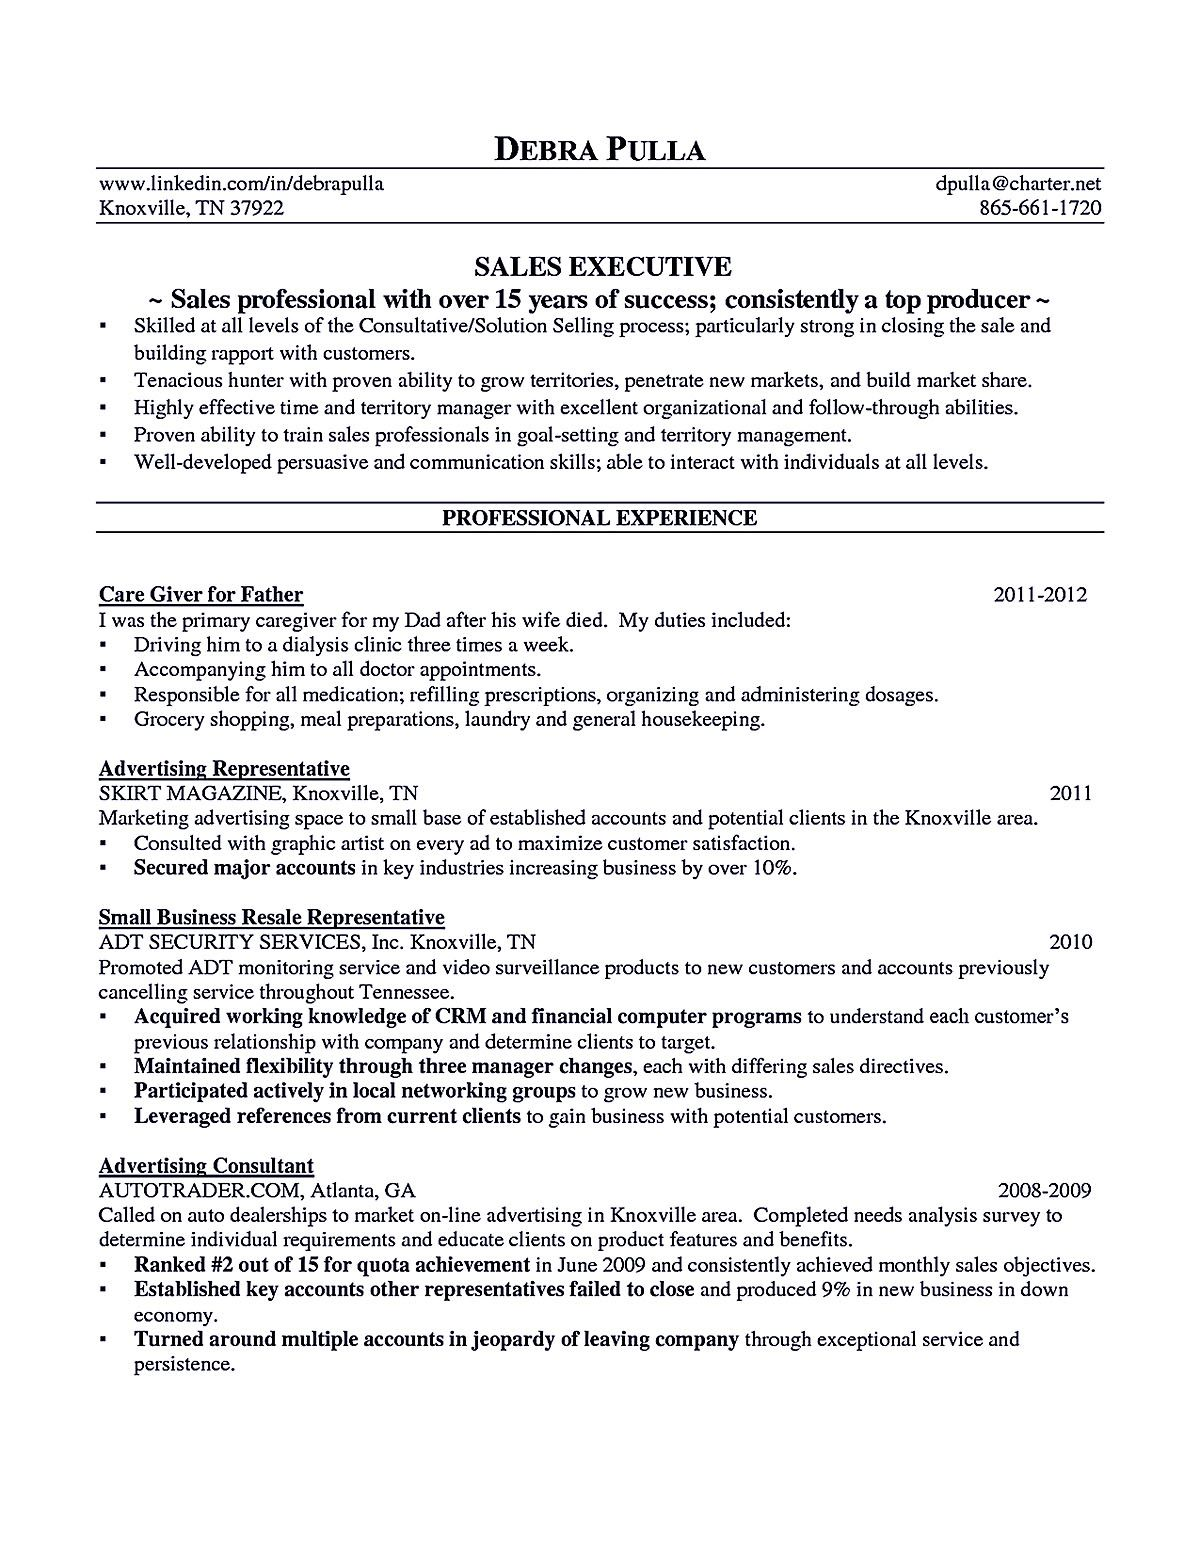 Account executive resume is like your weapon to get the job you want ...